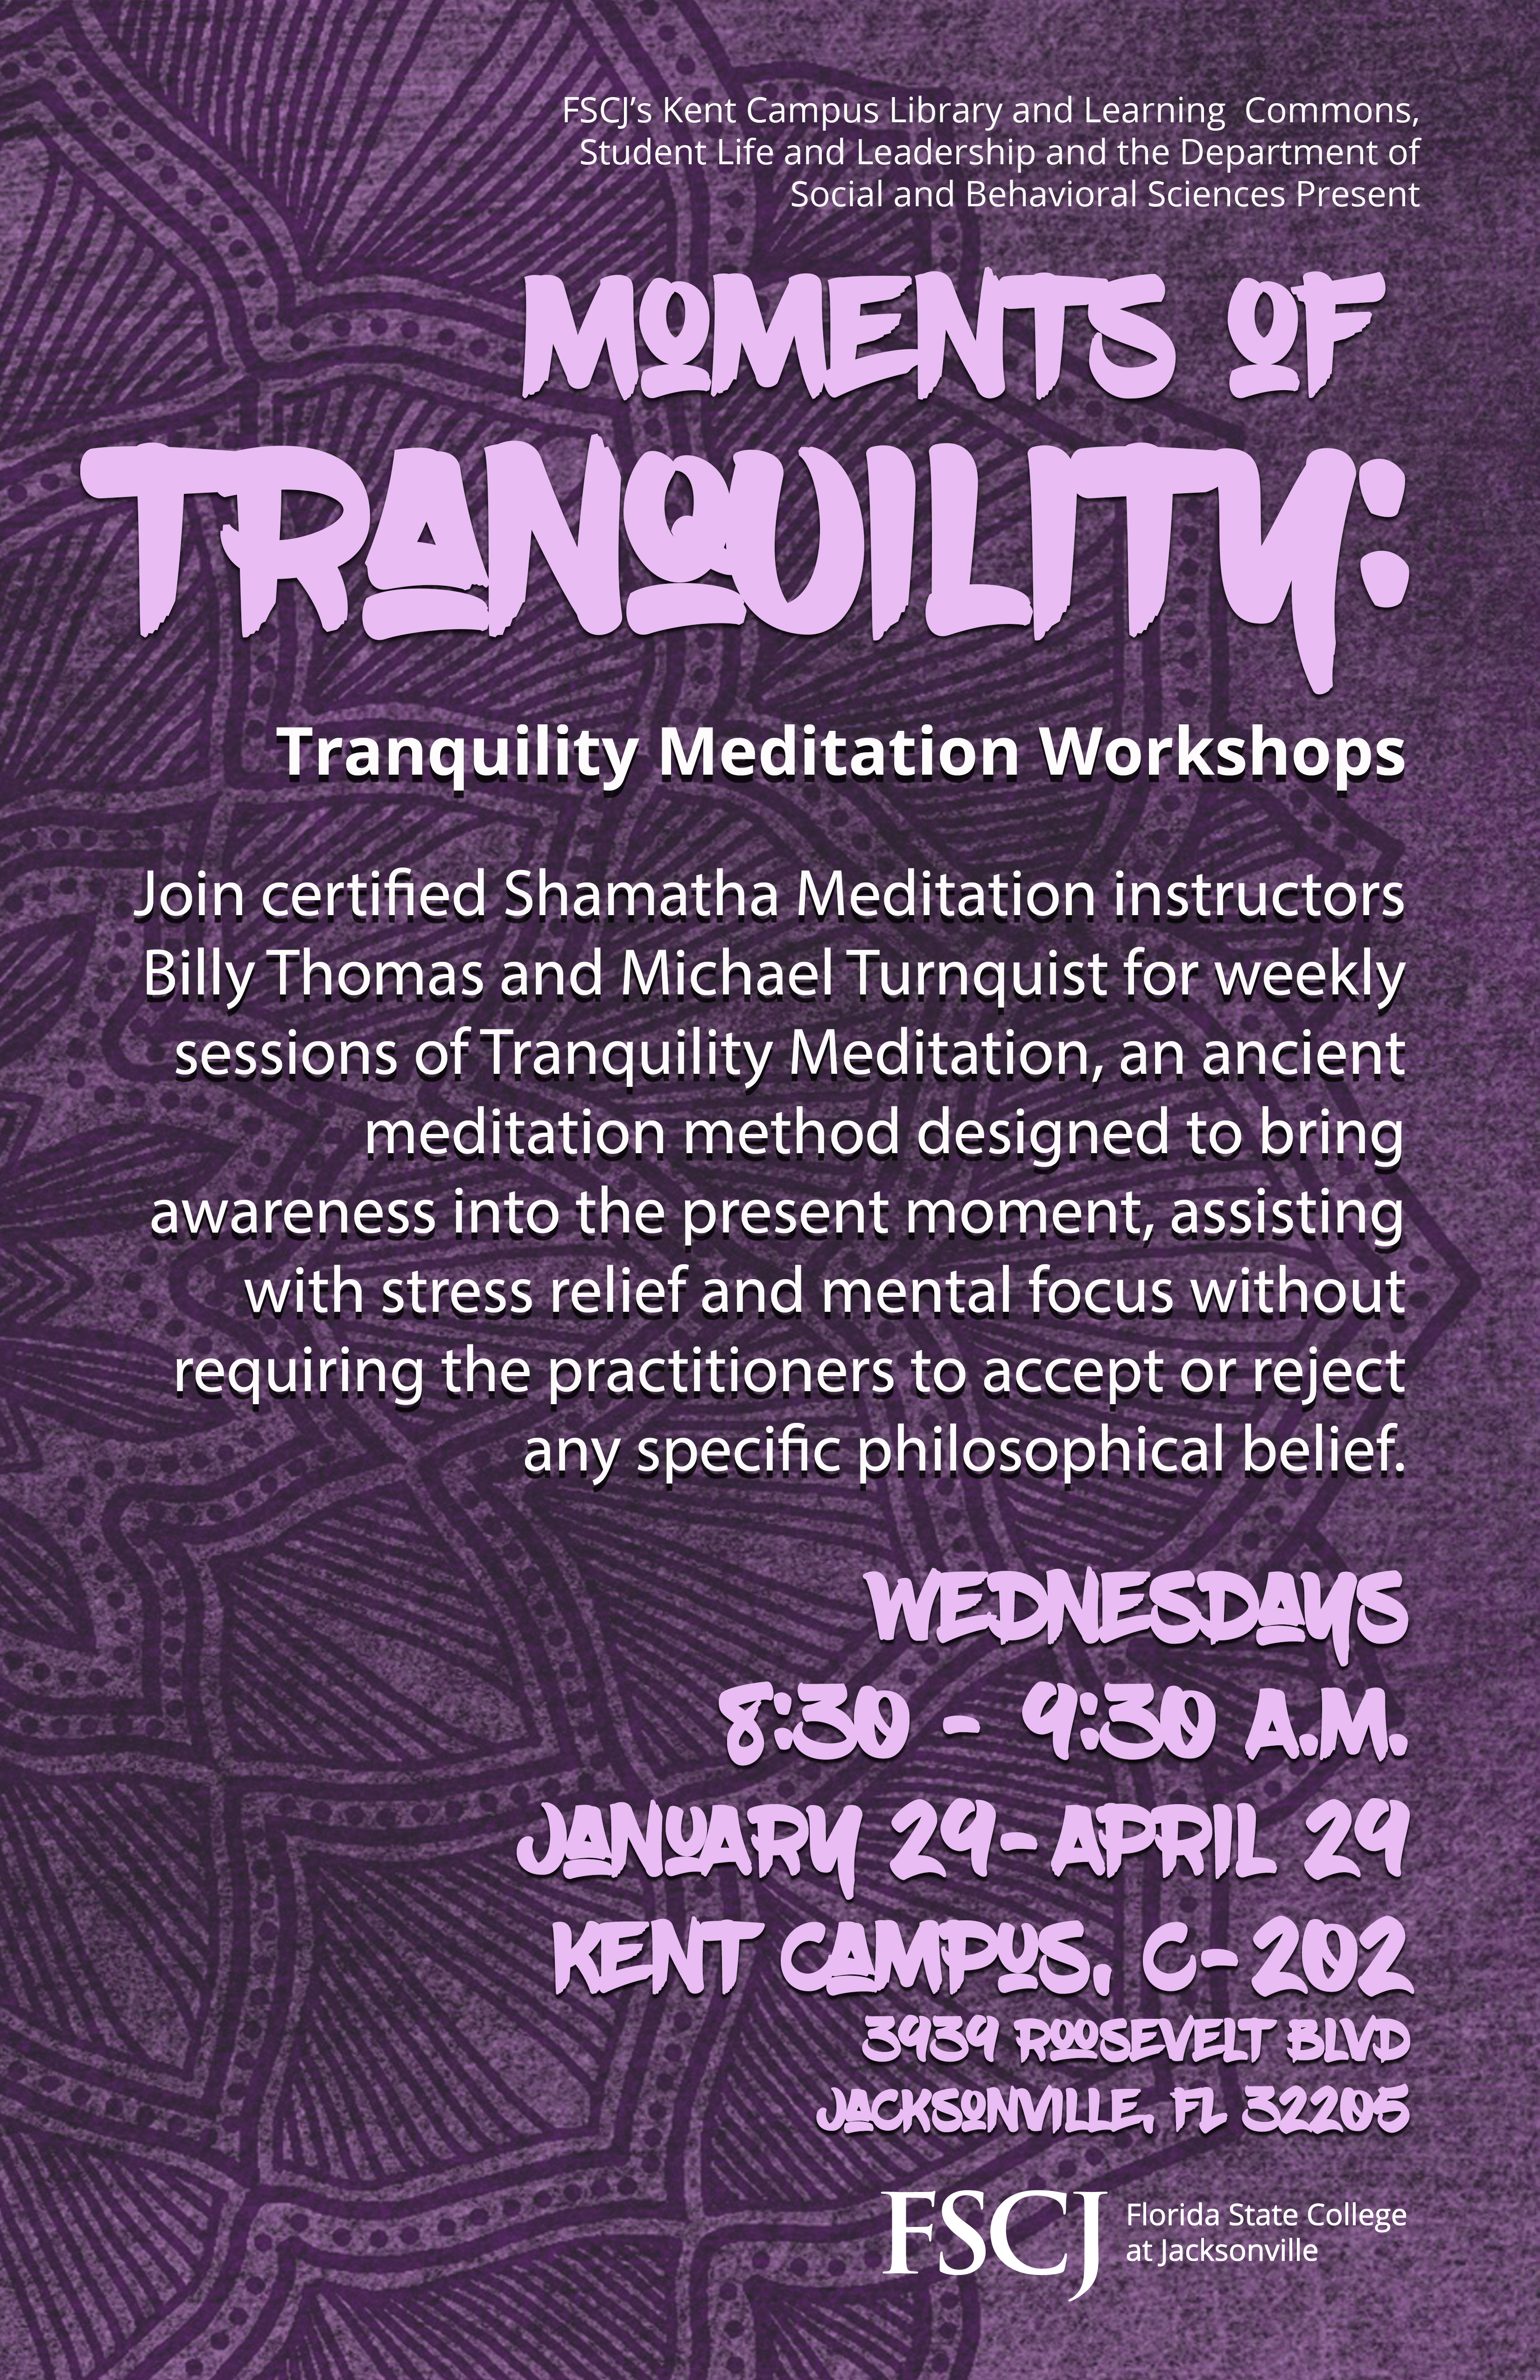 CANCELED: Moments of Tranquility: A Series of Meditation Workshops